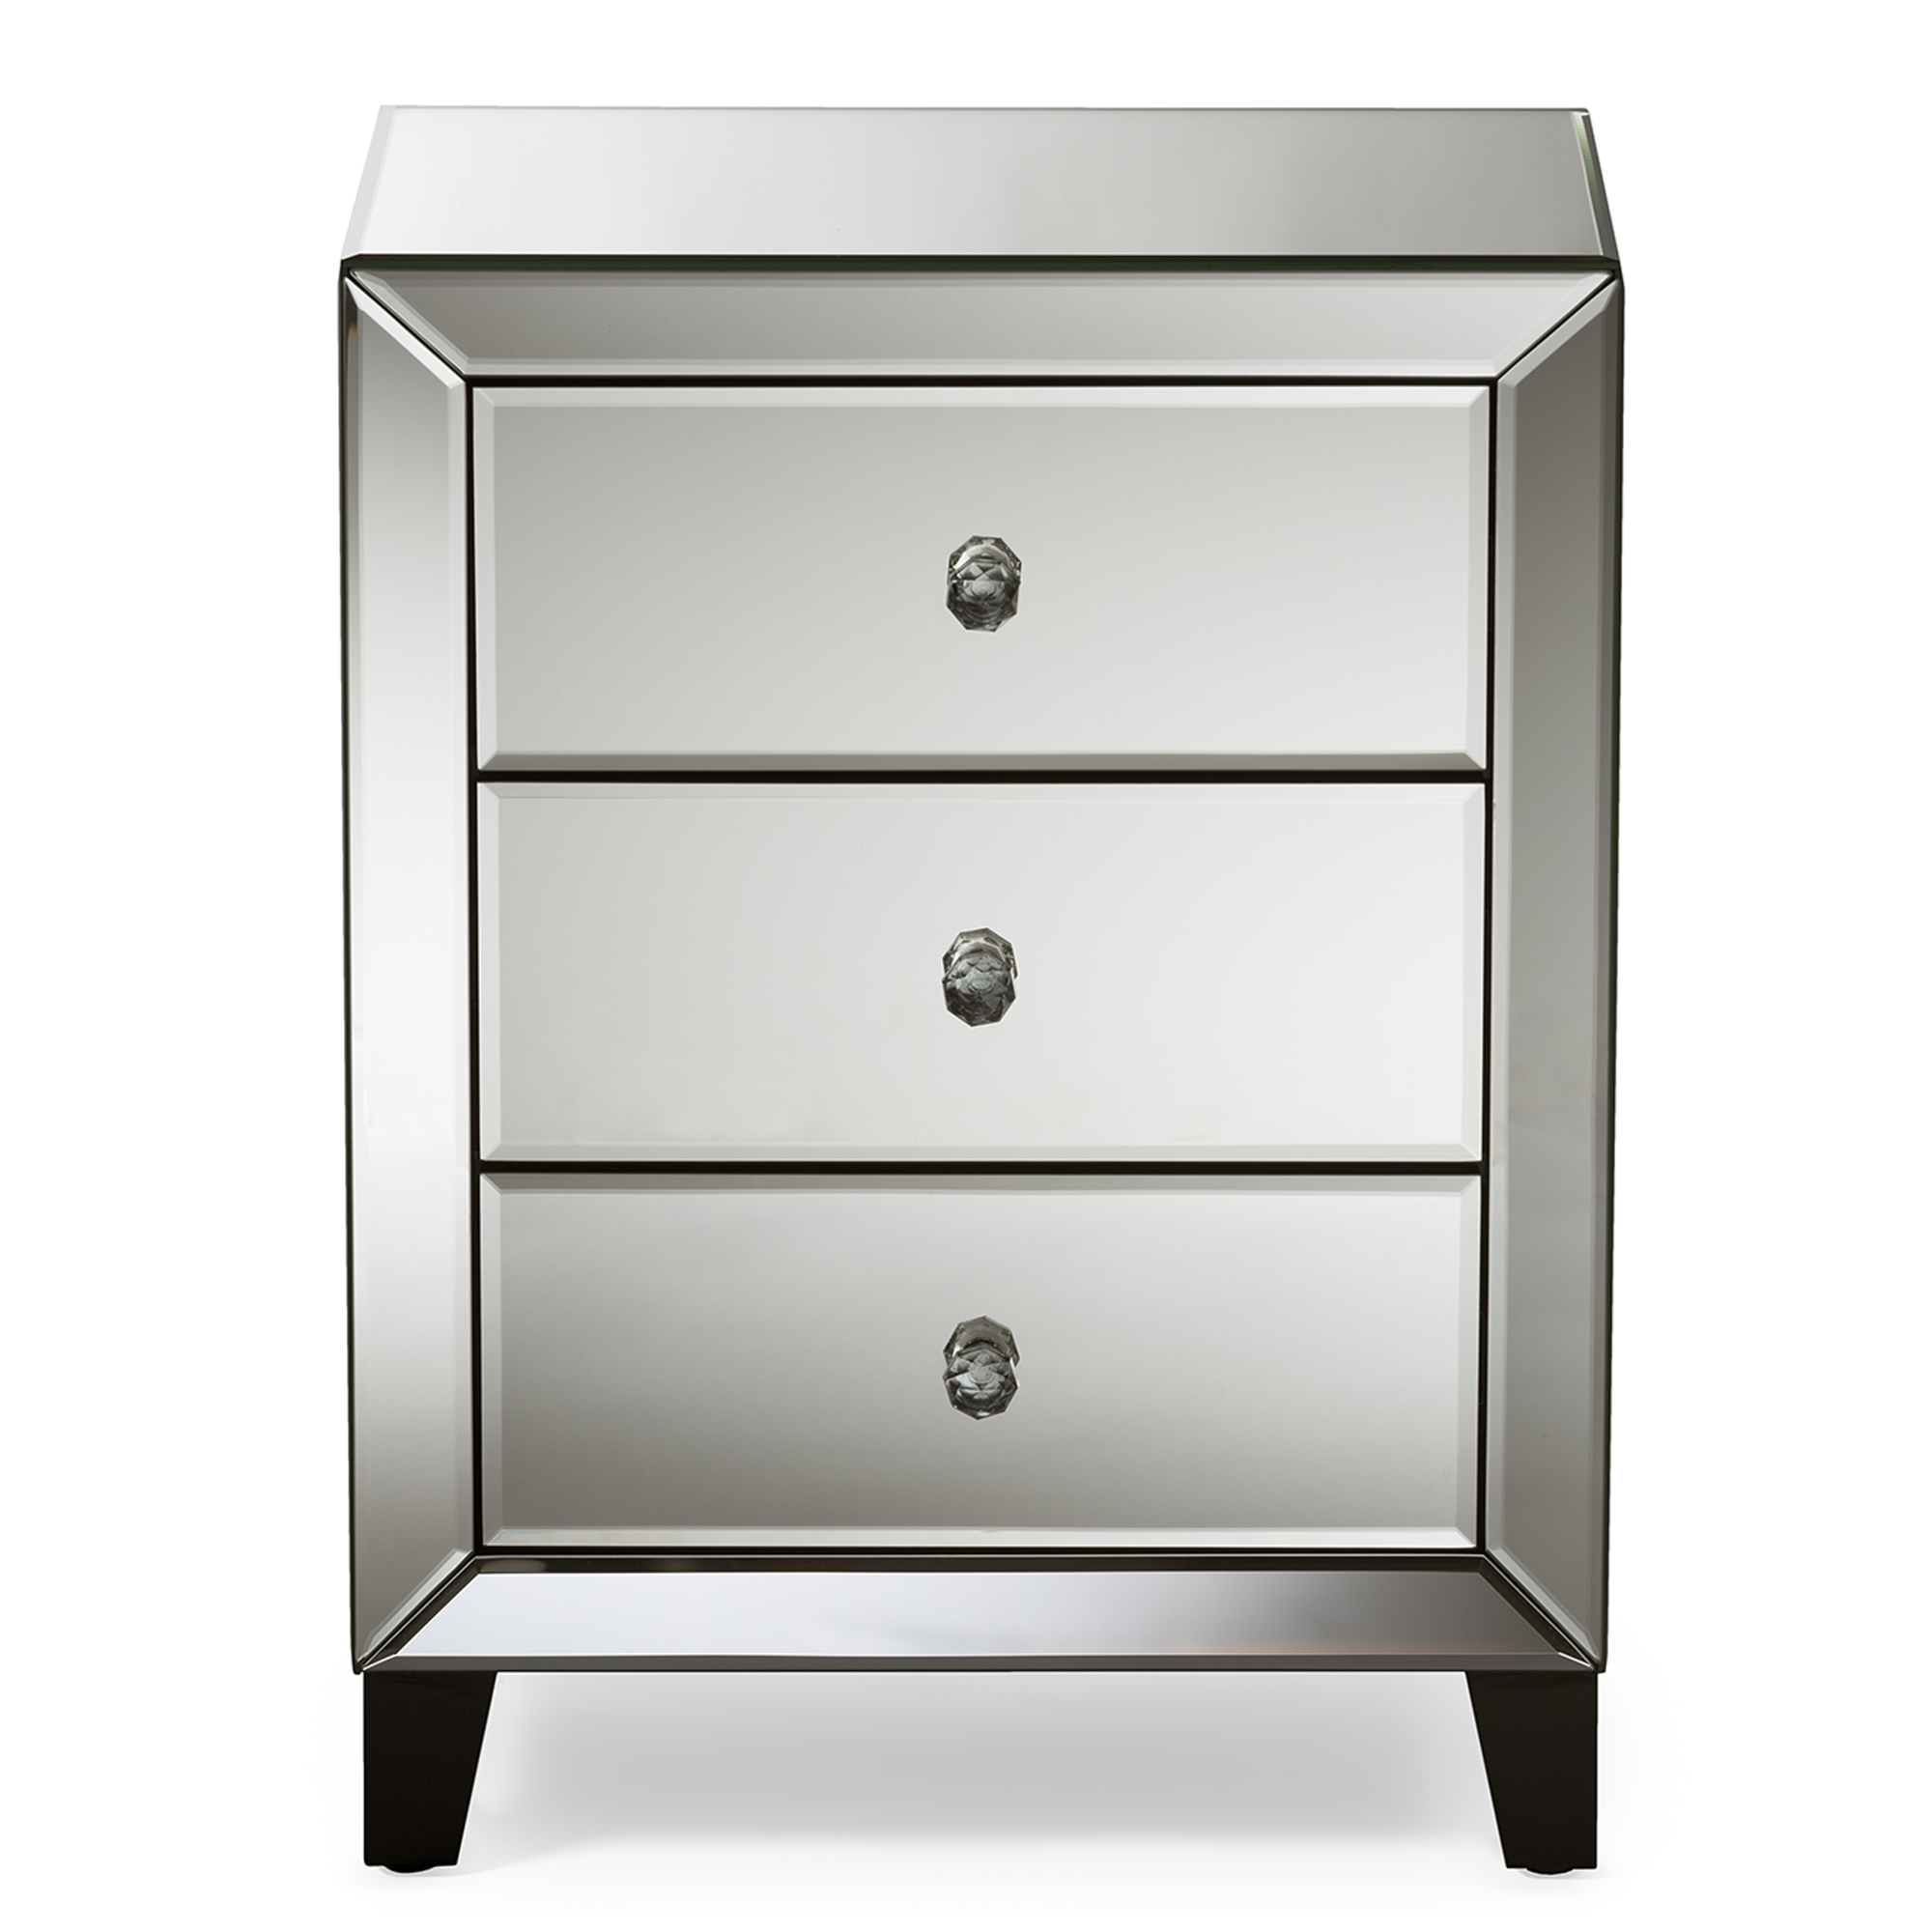 Vegas white glass mirrored bedside tables Mirrored Dresser Baxton Studio Chevron Modern And Contemporary Hollywood Regency Glamour Style Mirrored 3drawers Nightstand Bedside Table Baxton Studio Baxton Studio Wholesale End Tables Wholesale Living Room